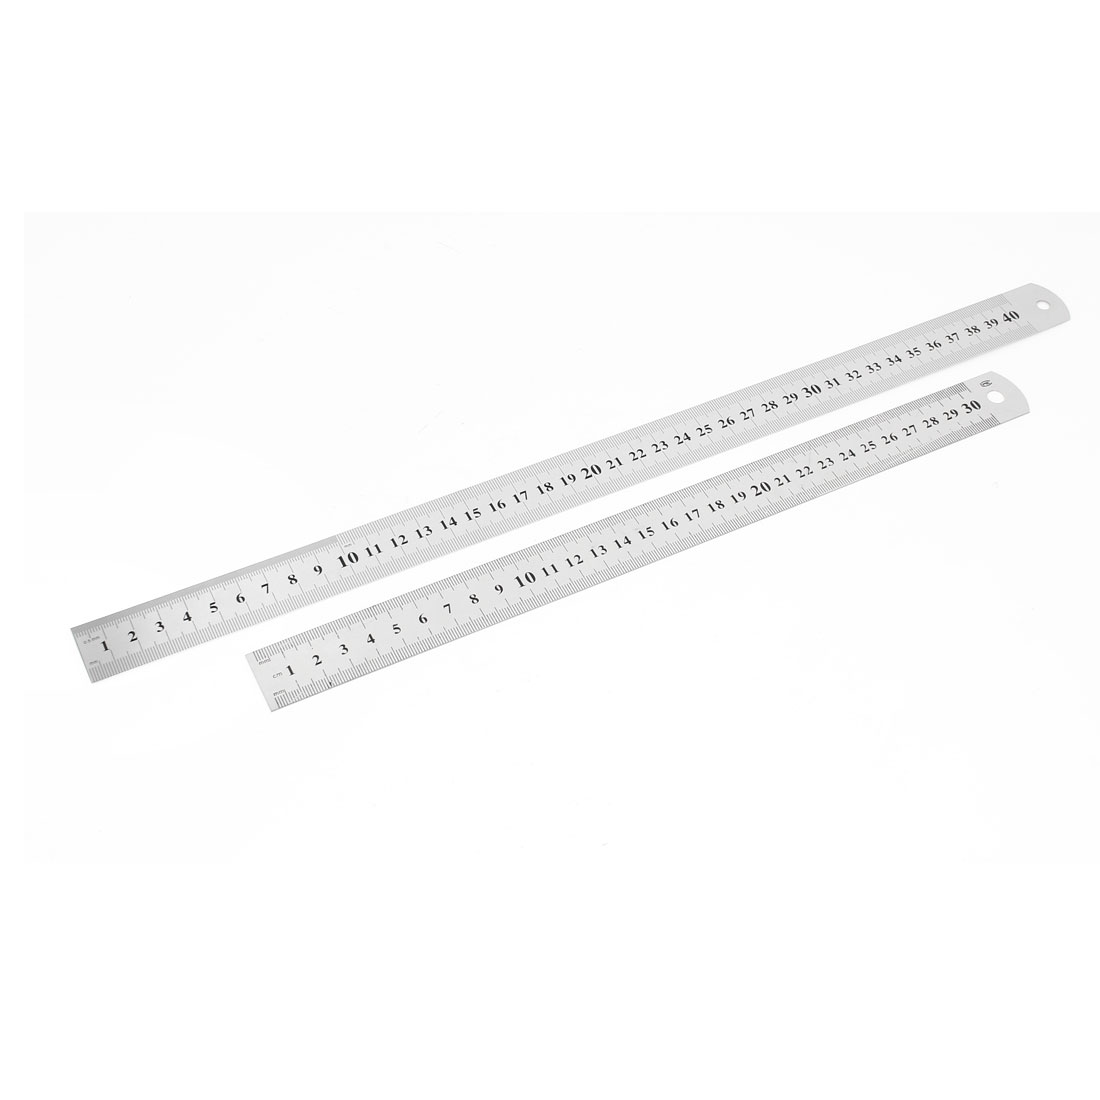 2 in 1 30cm 40cm Double Side Stationery Metric Straight Ruler Silver Tone